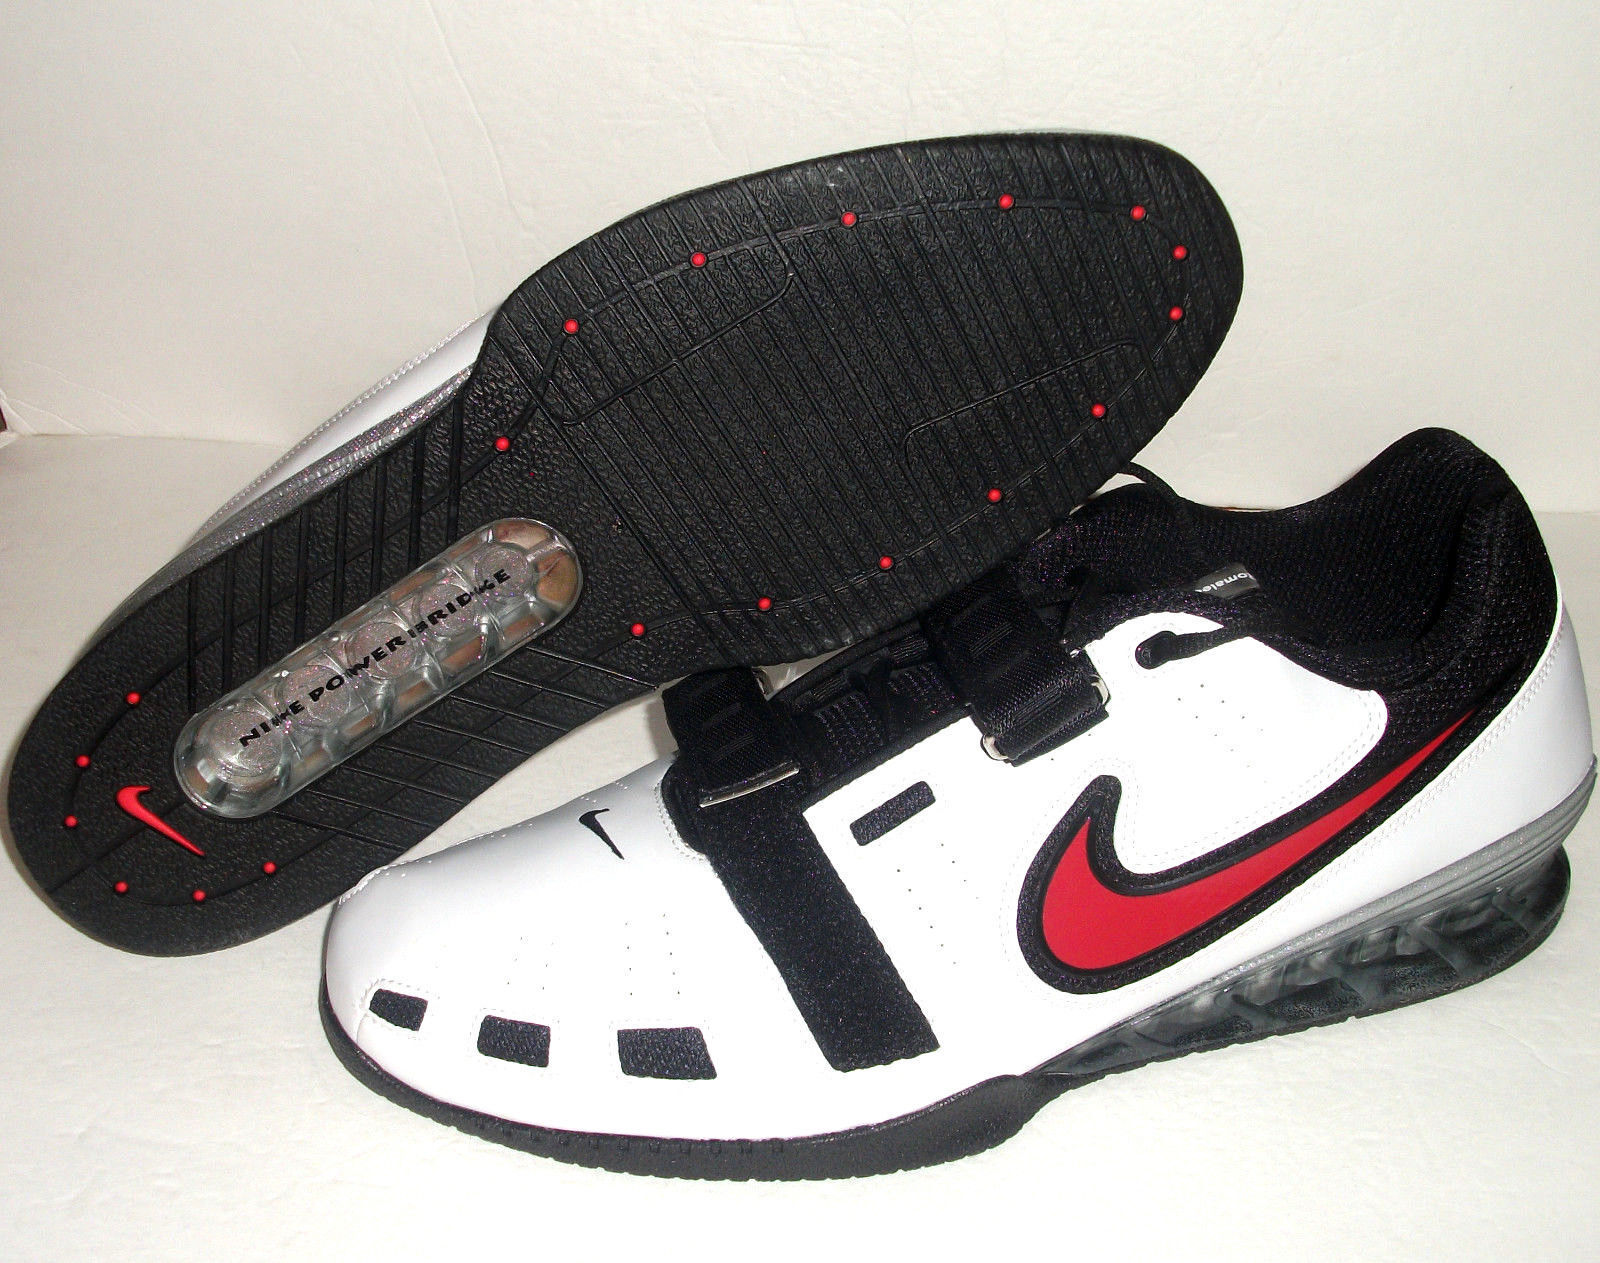 Nike Romaleos 2 Weightlifting Powerlifting Shoes White Red  476927-161 Sz 17